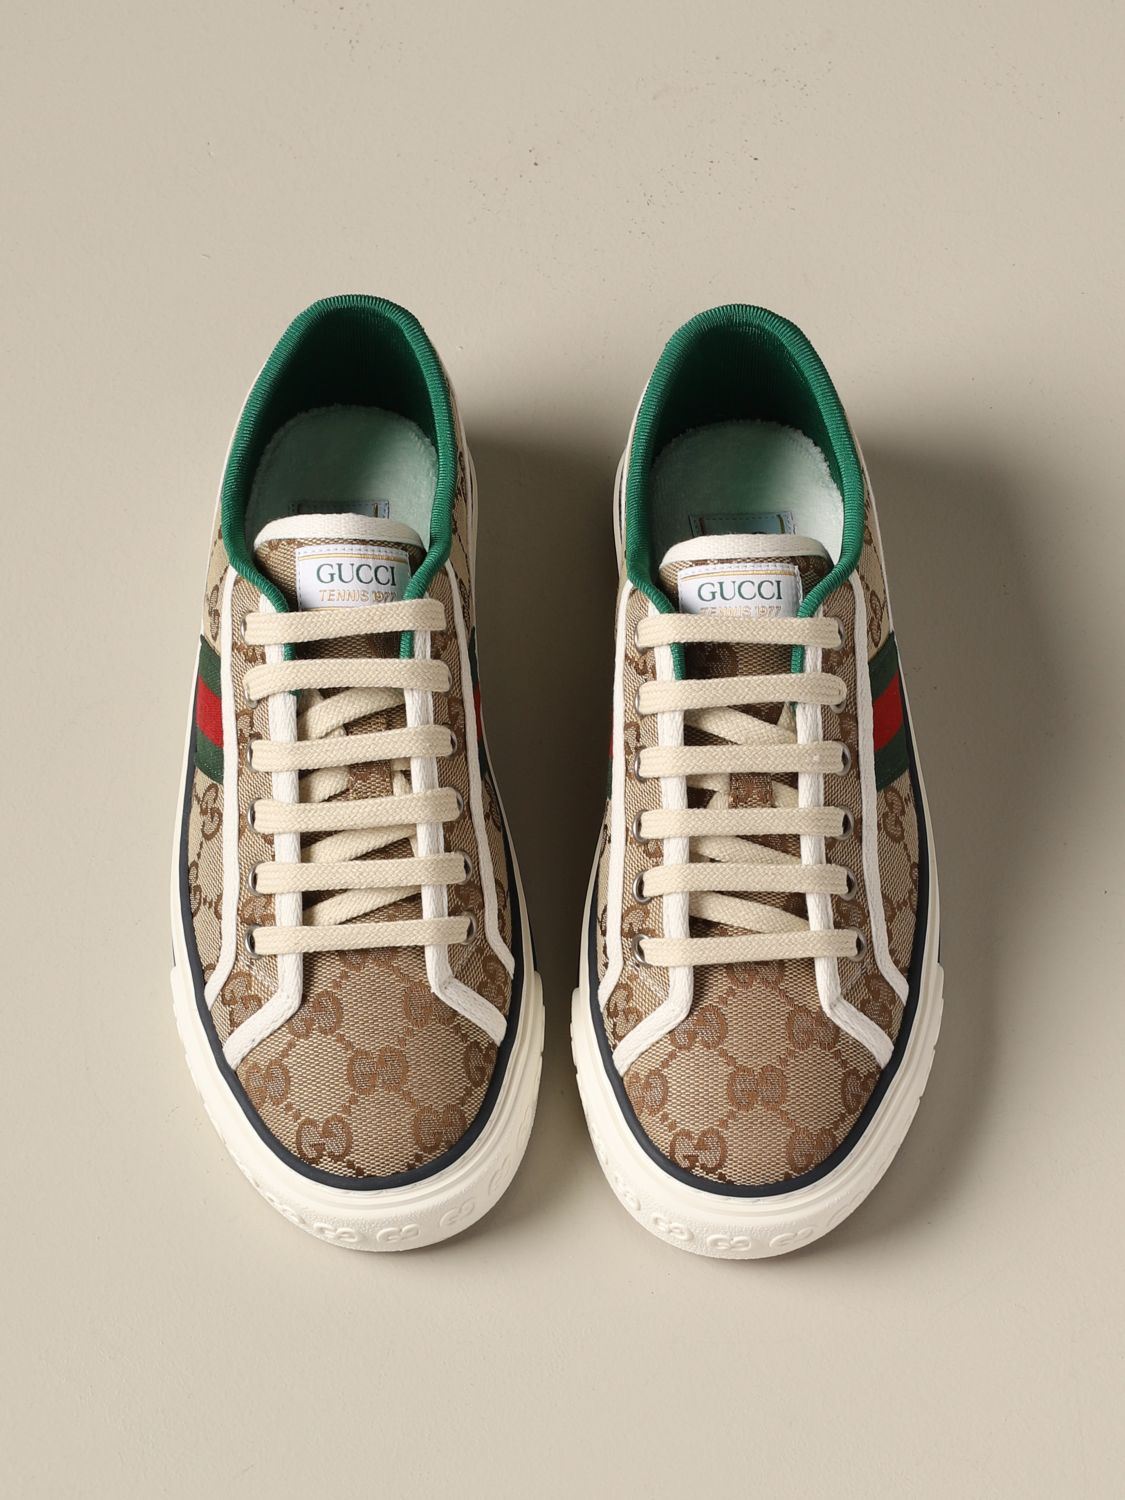 gucci tennis 1977 sneakers with web band sneakers gucci